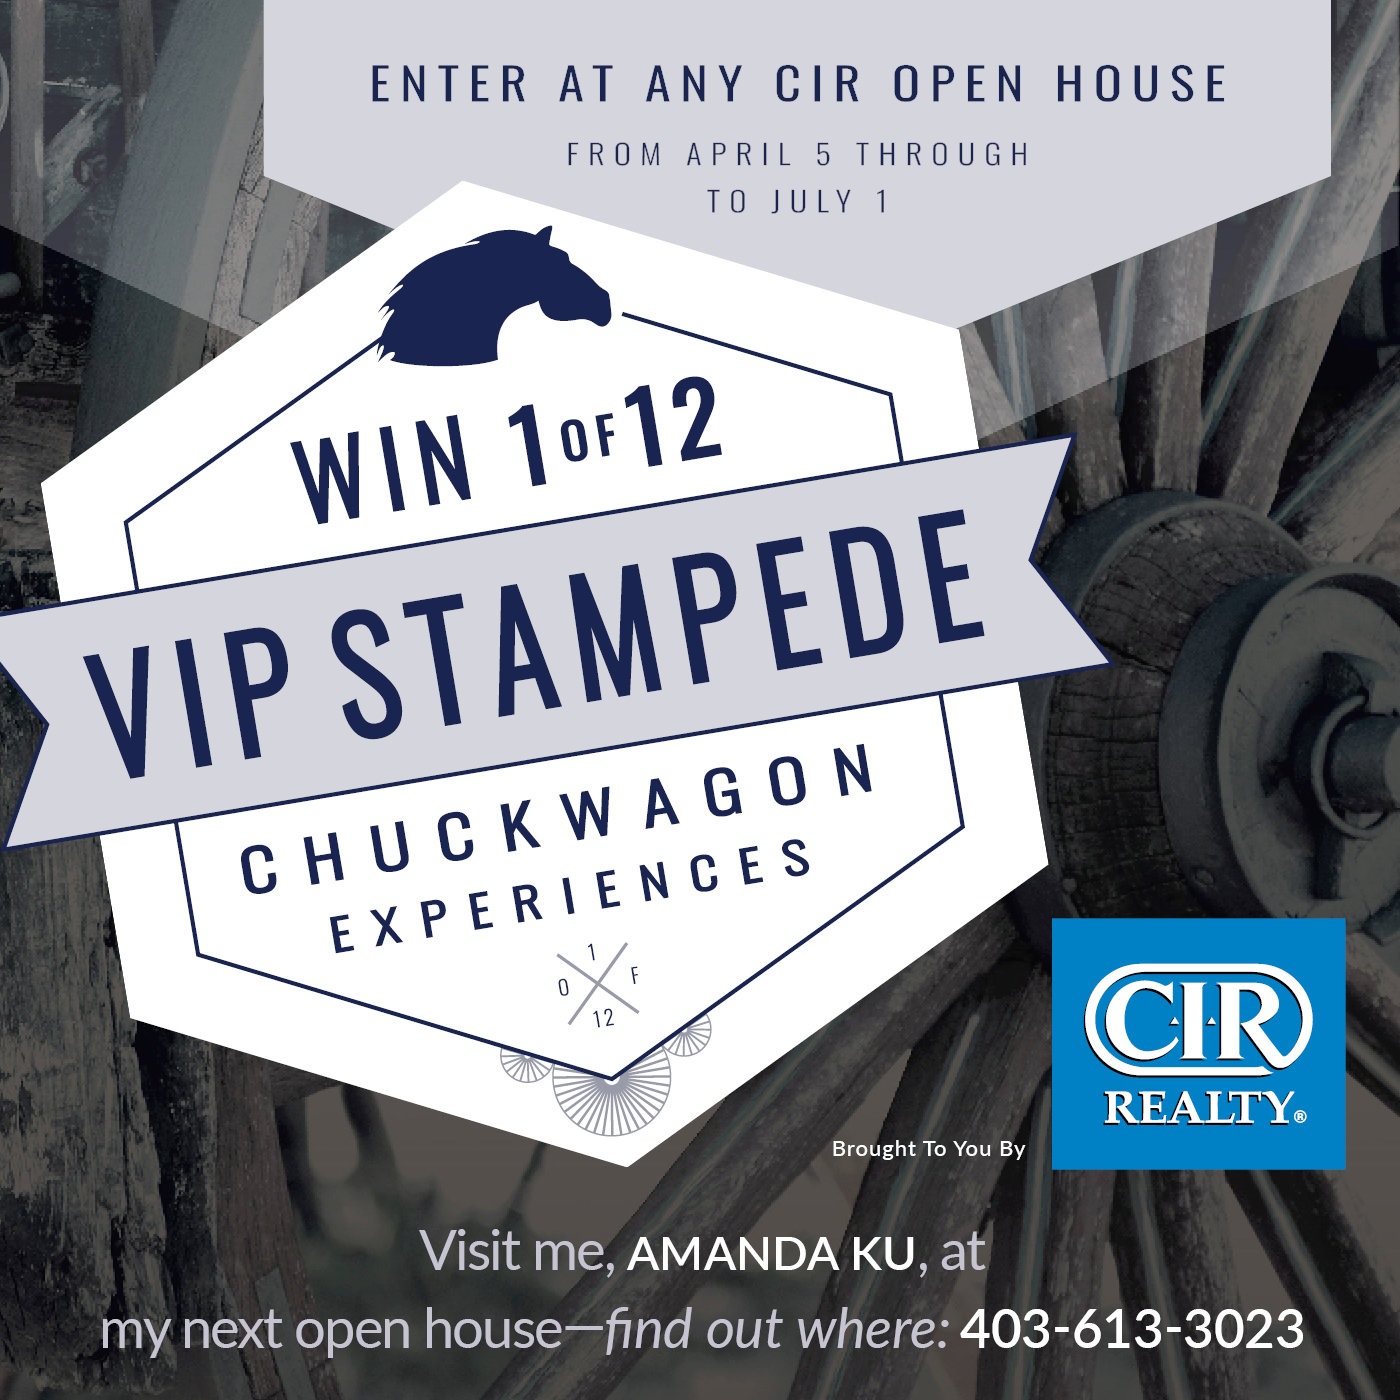 CIR Open House Contest